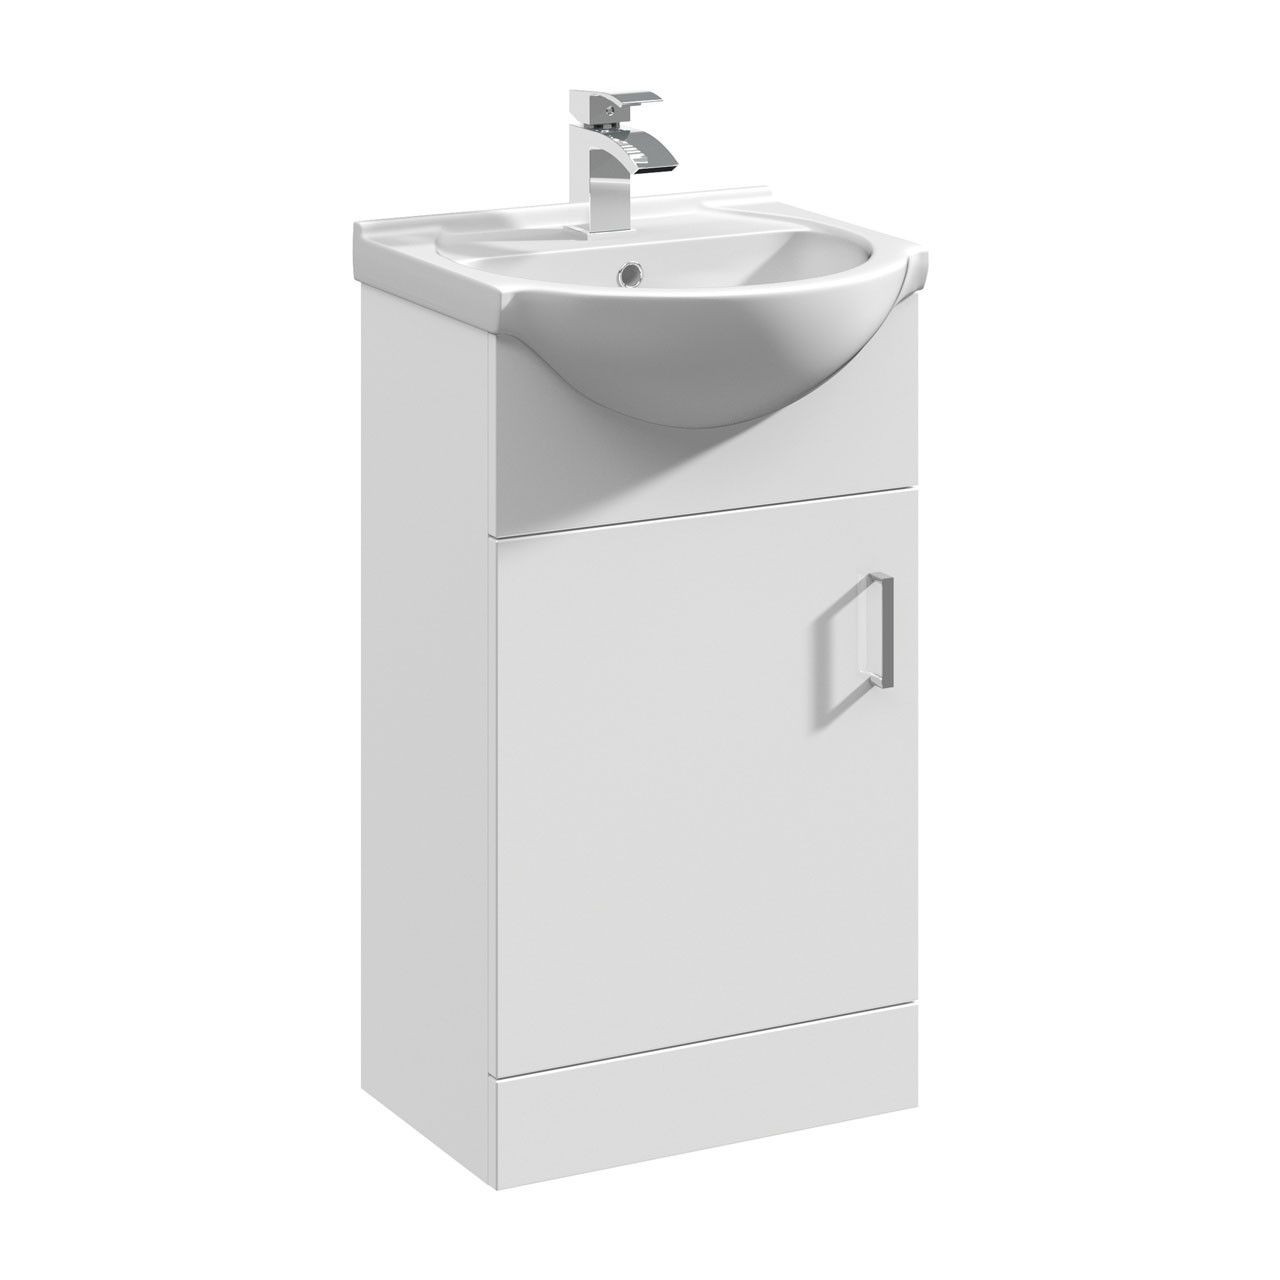 Premier Mayford Gloss White 450mm Vanity Unit and Curved Basin with 1 Tap Hole - VTY450